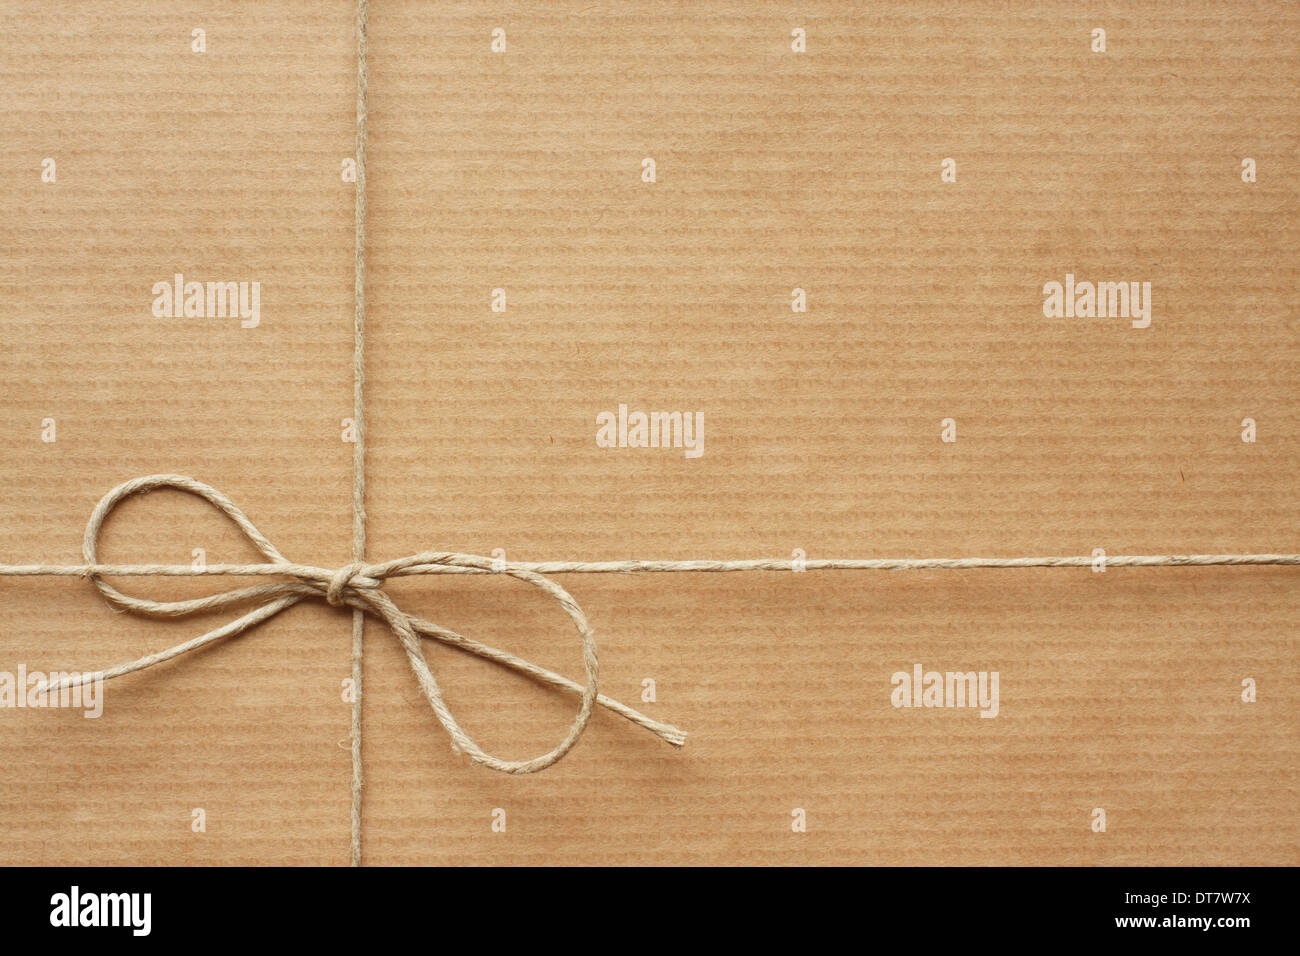 Pack wrapped in wrapping paper, tied with string. Empty space for Your text - Stock Image